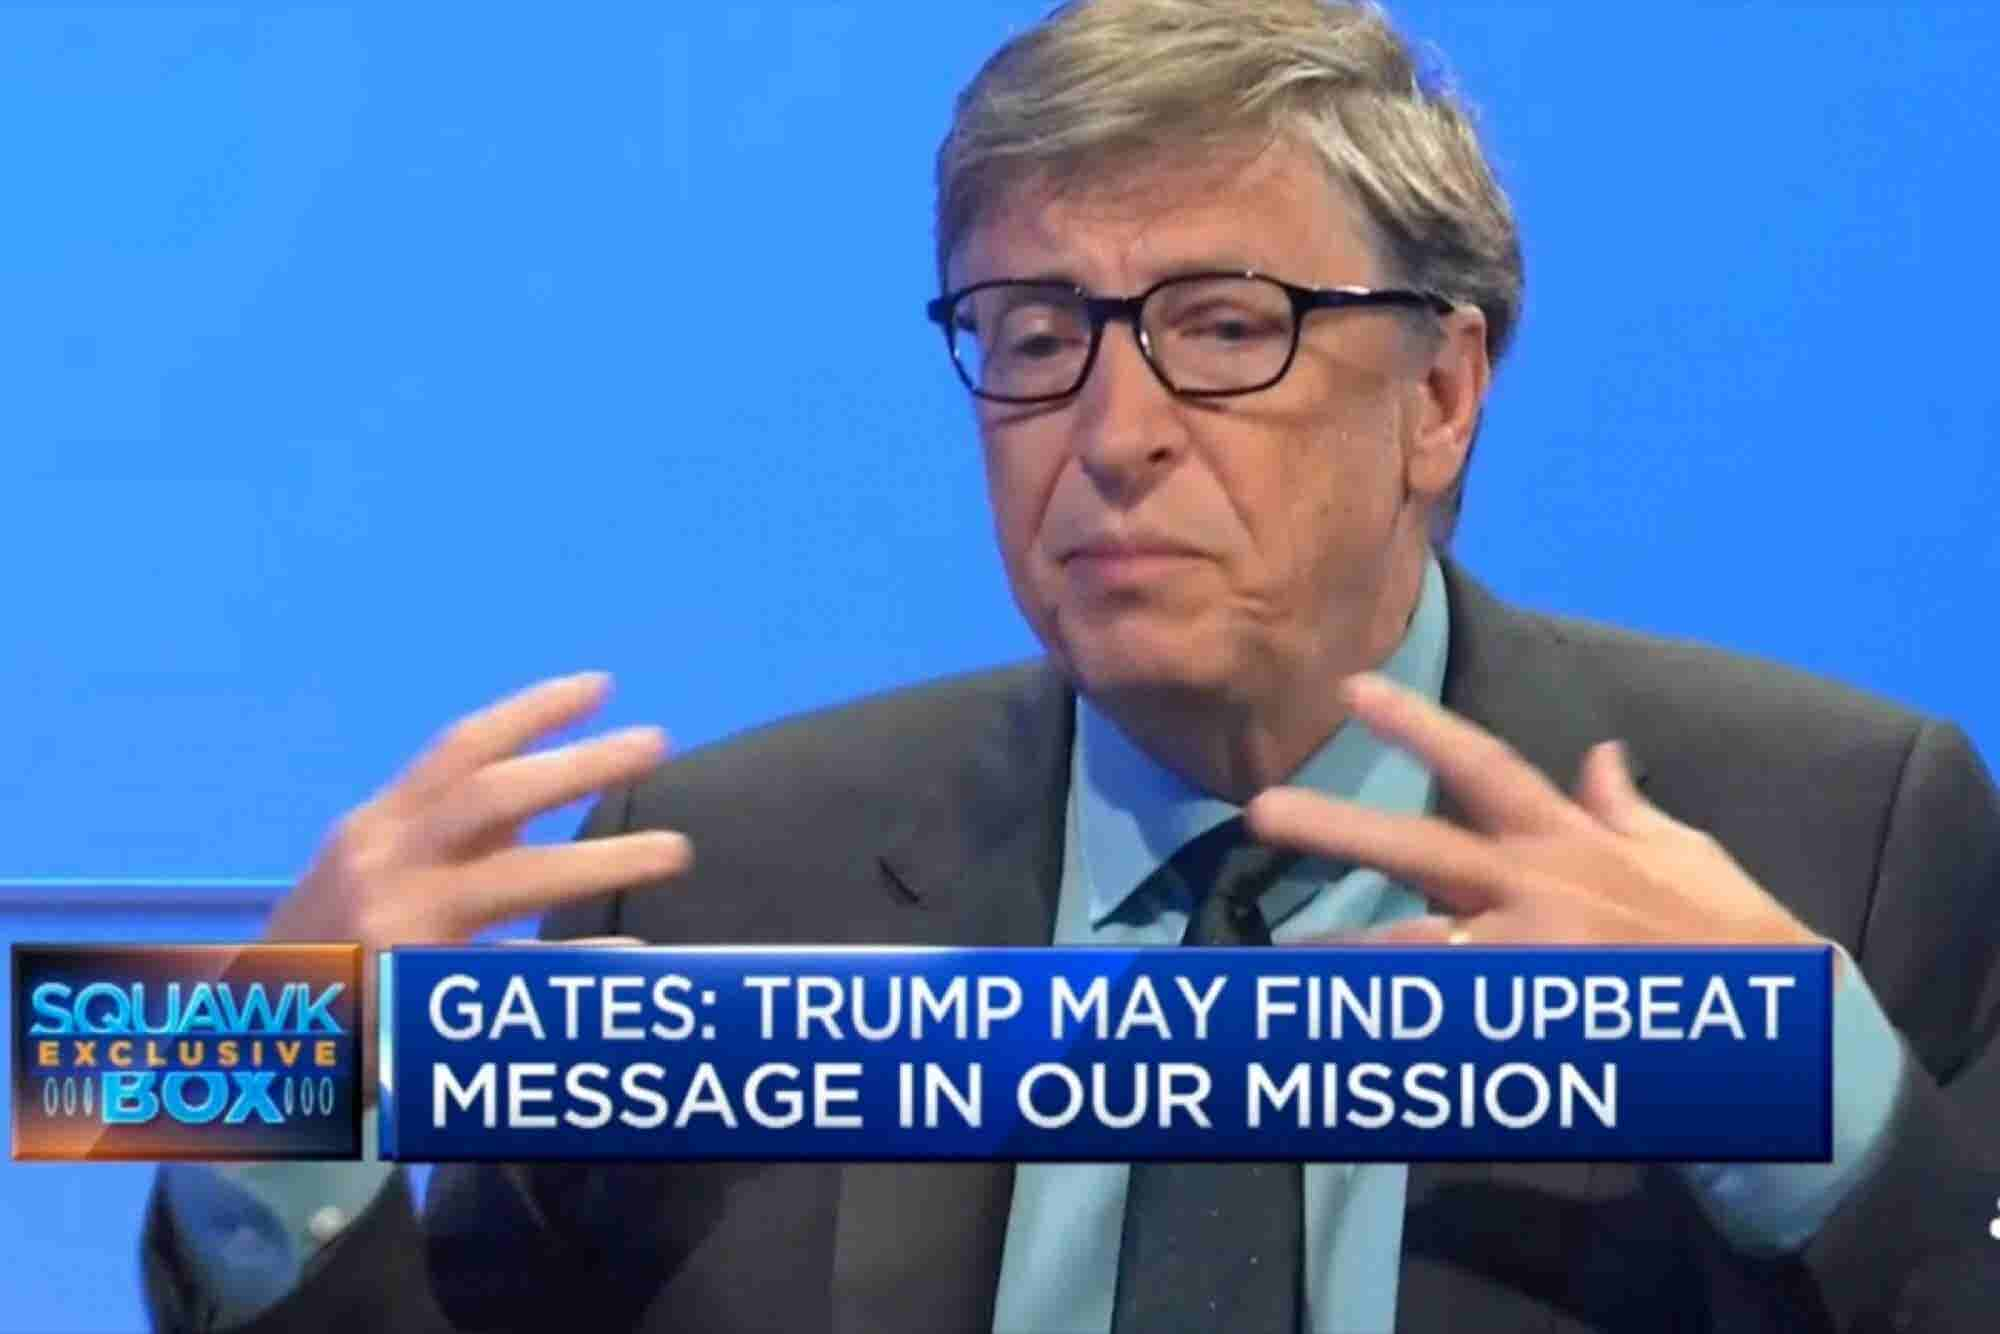 Bill Gates: Trump's Messaging Strategy Reminds Me of John F. Kennedy